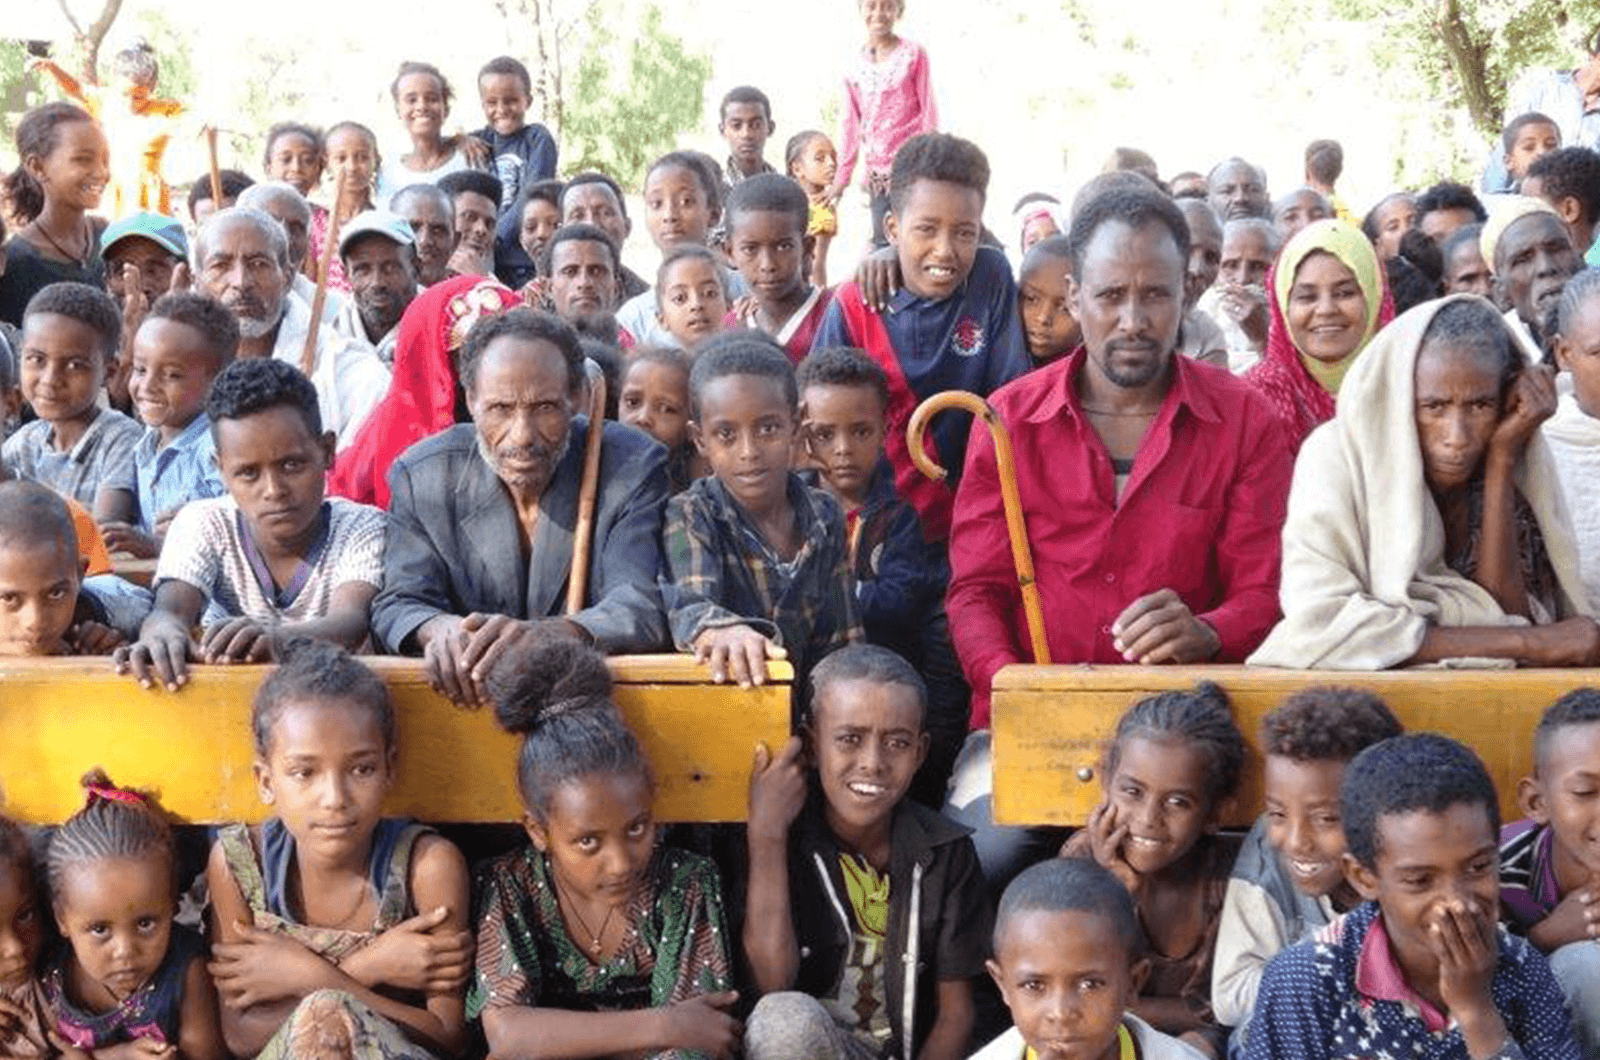 New school buildings in Ethiopia were built around a rainwater-collection system so students have drinking water, and it also used for maintenance and growing vegetables.